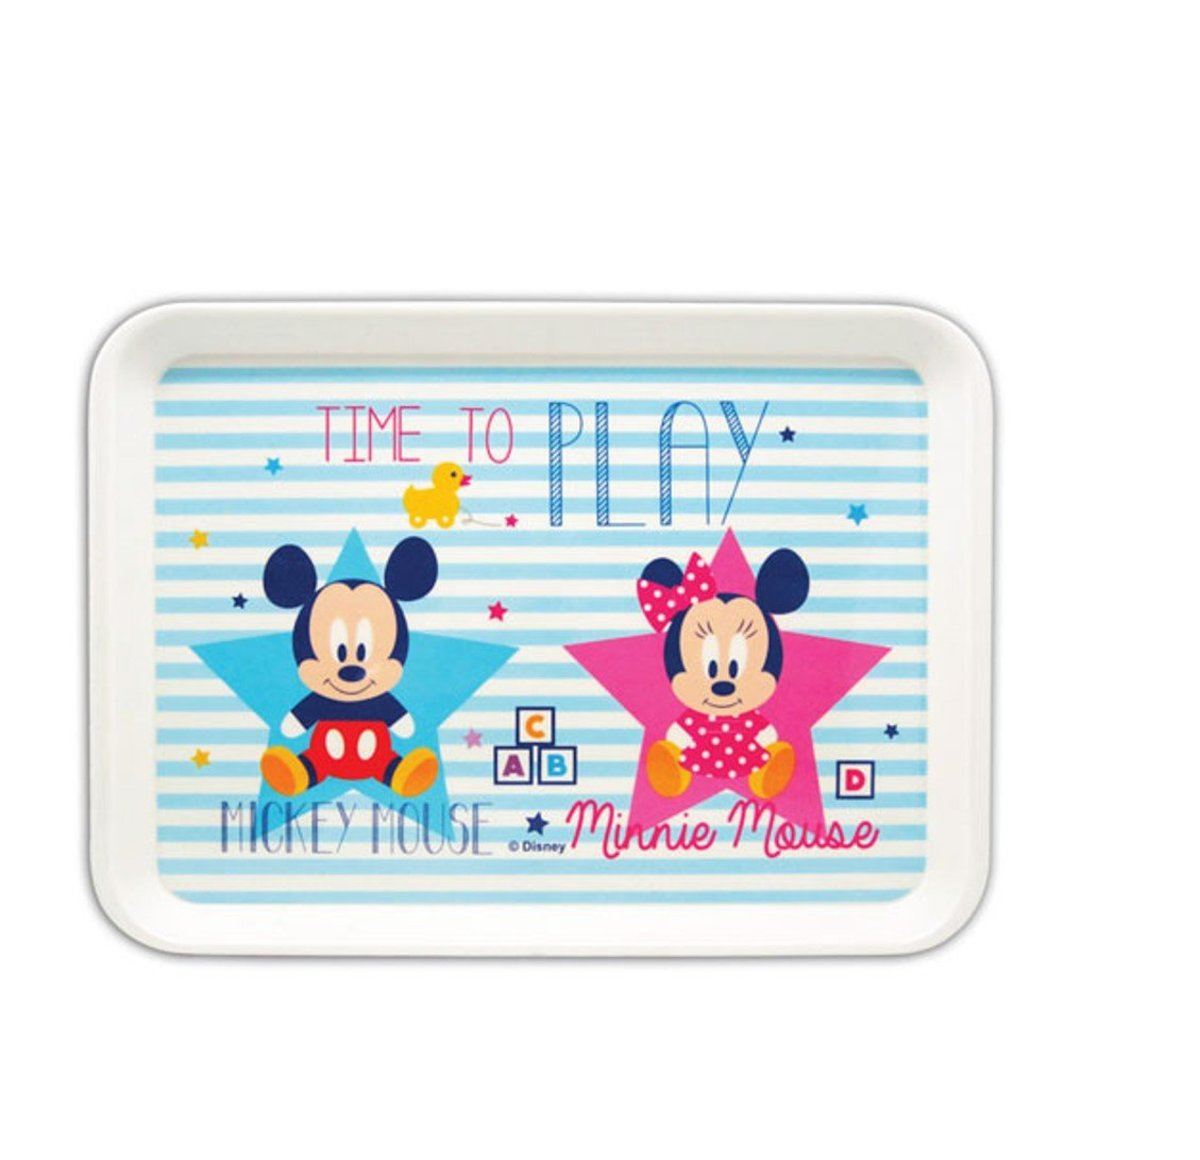 Melamine Tray (M)B(Licensed by Disney)